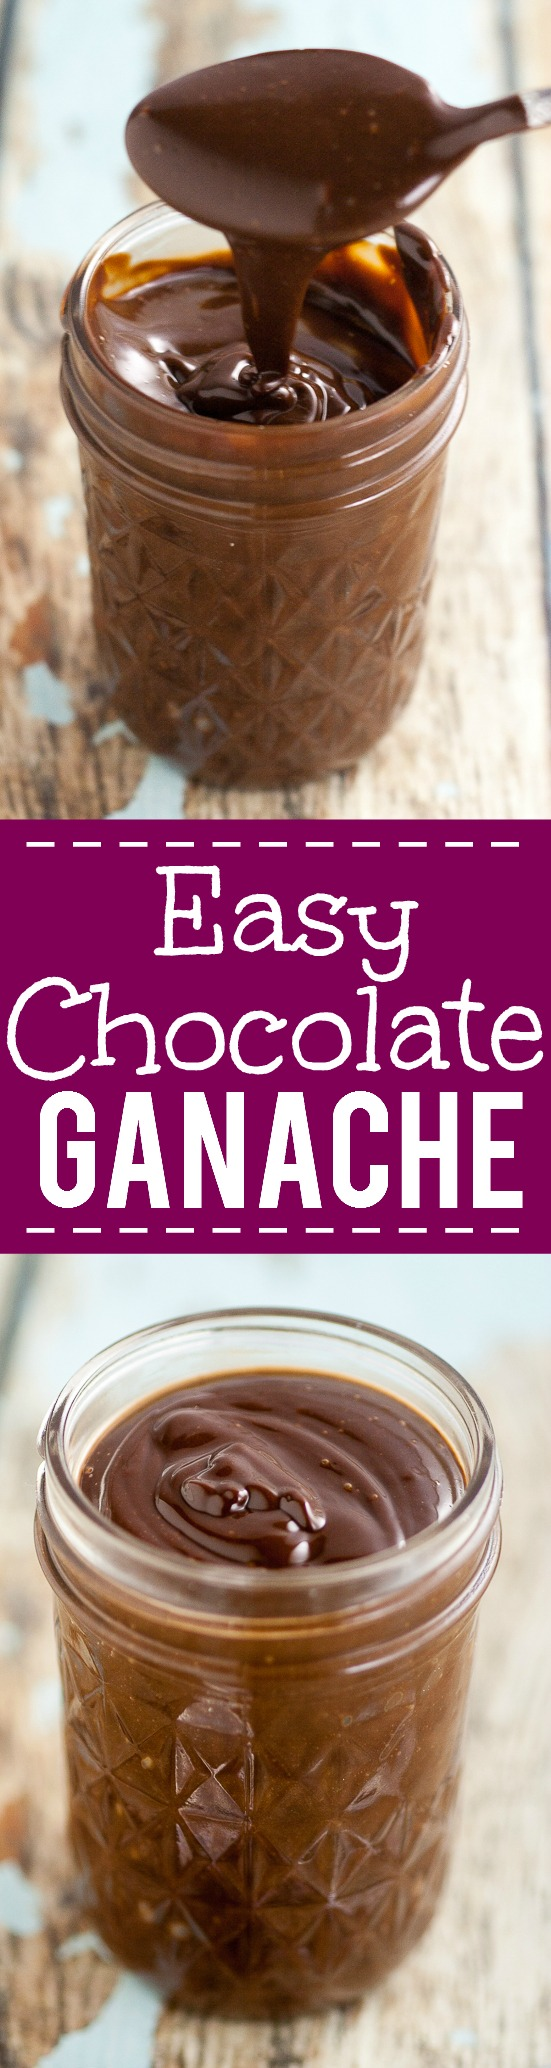 Quick & Easy Chocolate Ganache Recipe | The Gracious Wife